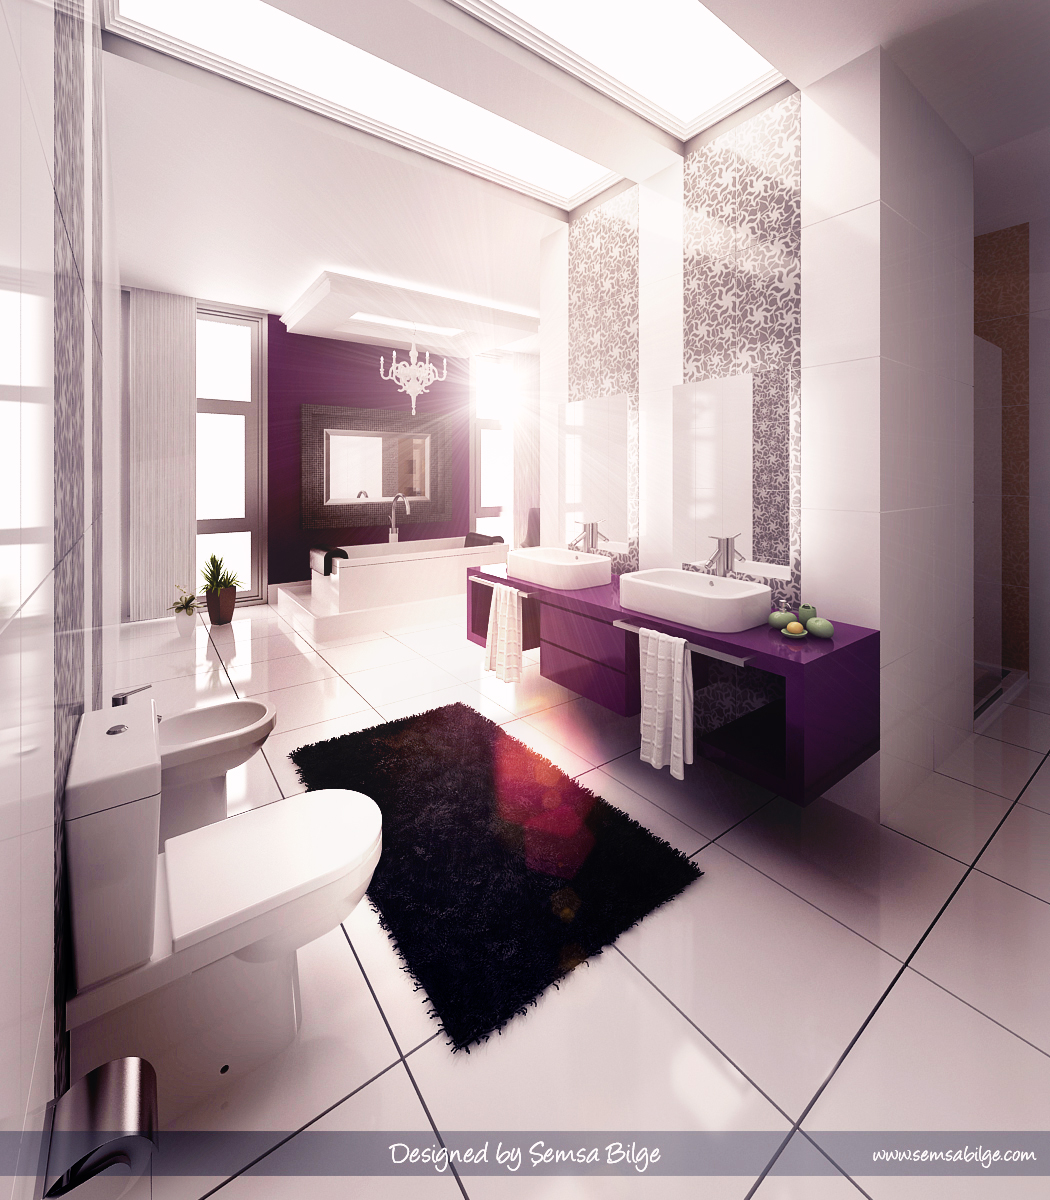 Beautiful bathroom designs ideas interior design for Beautiful bathroom ideas pictures